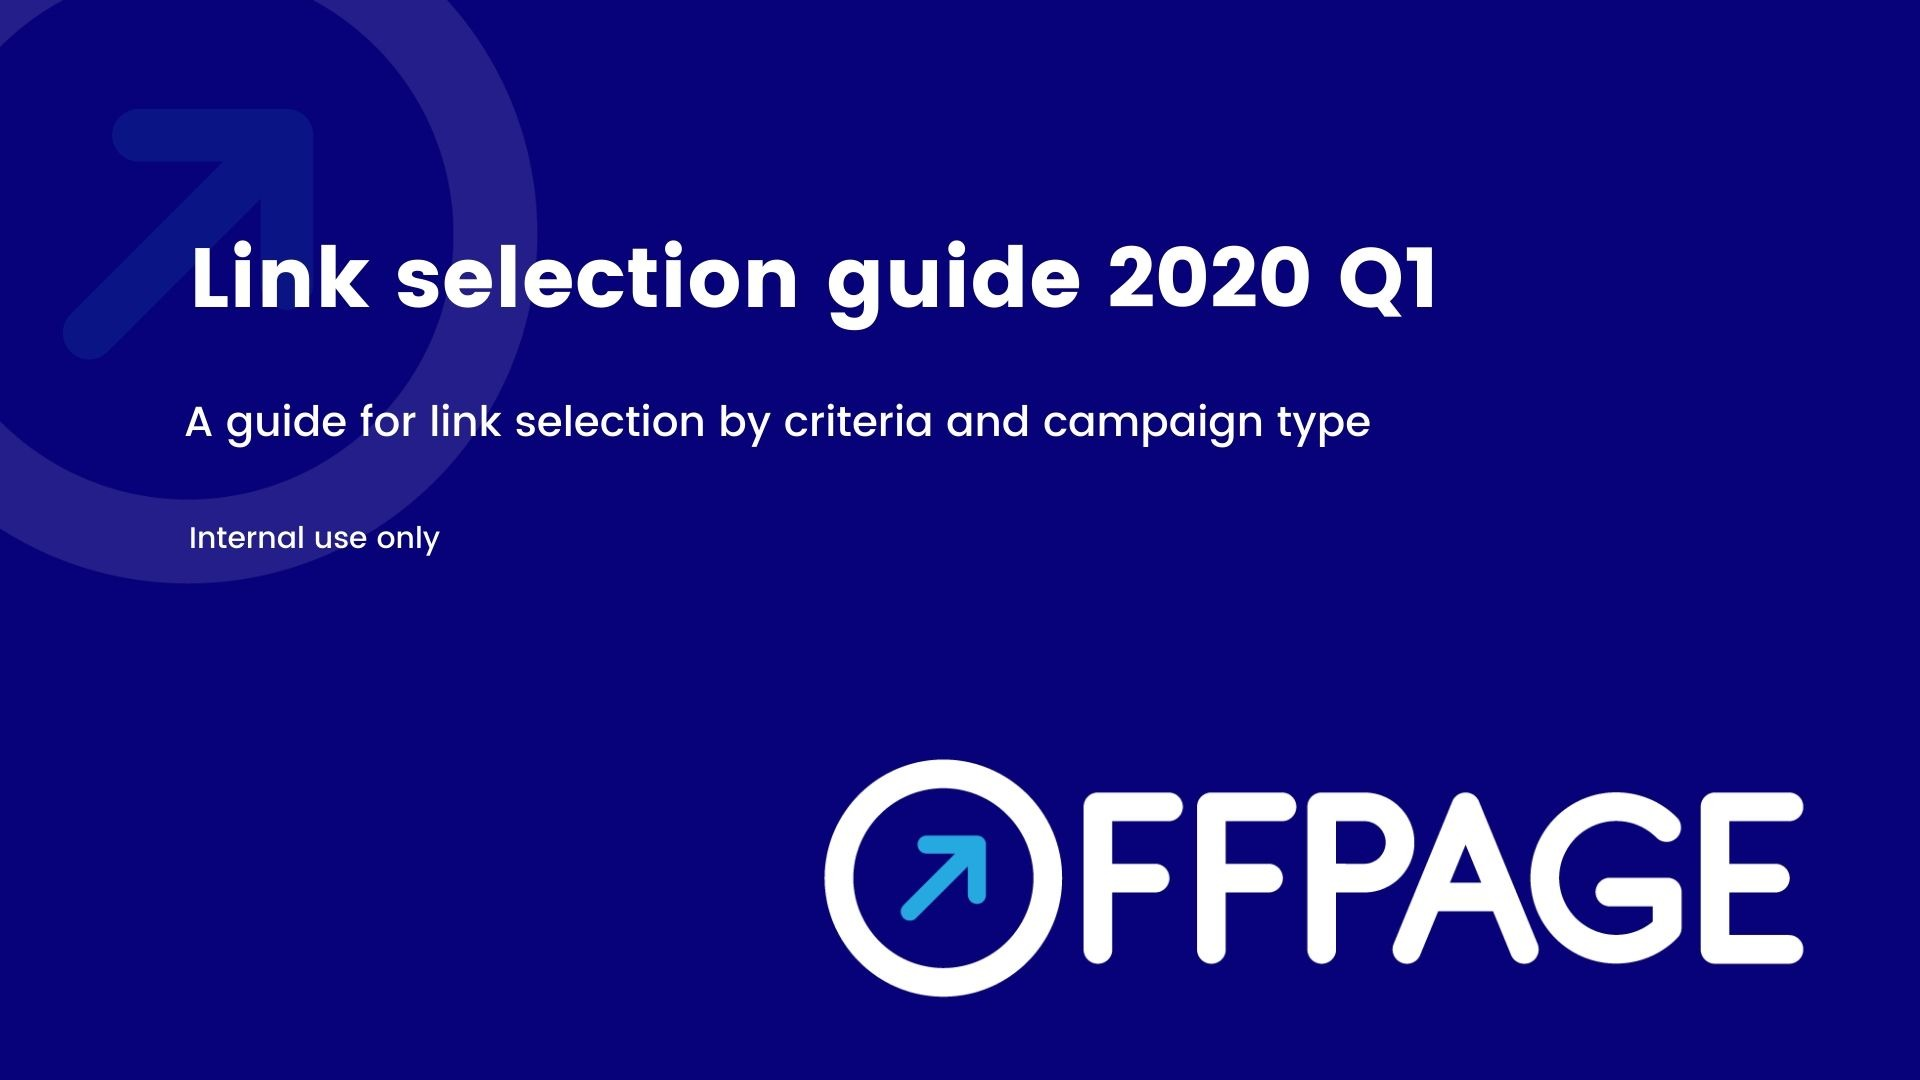 Link selection